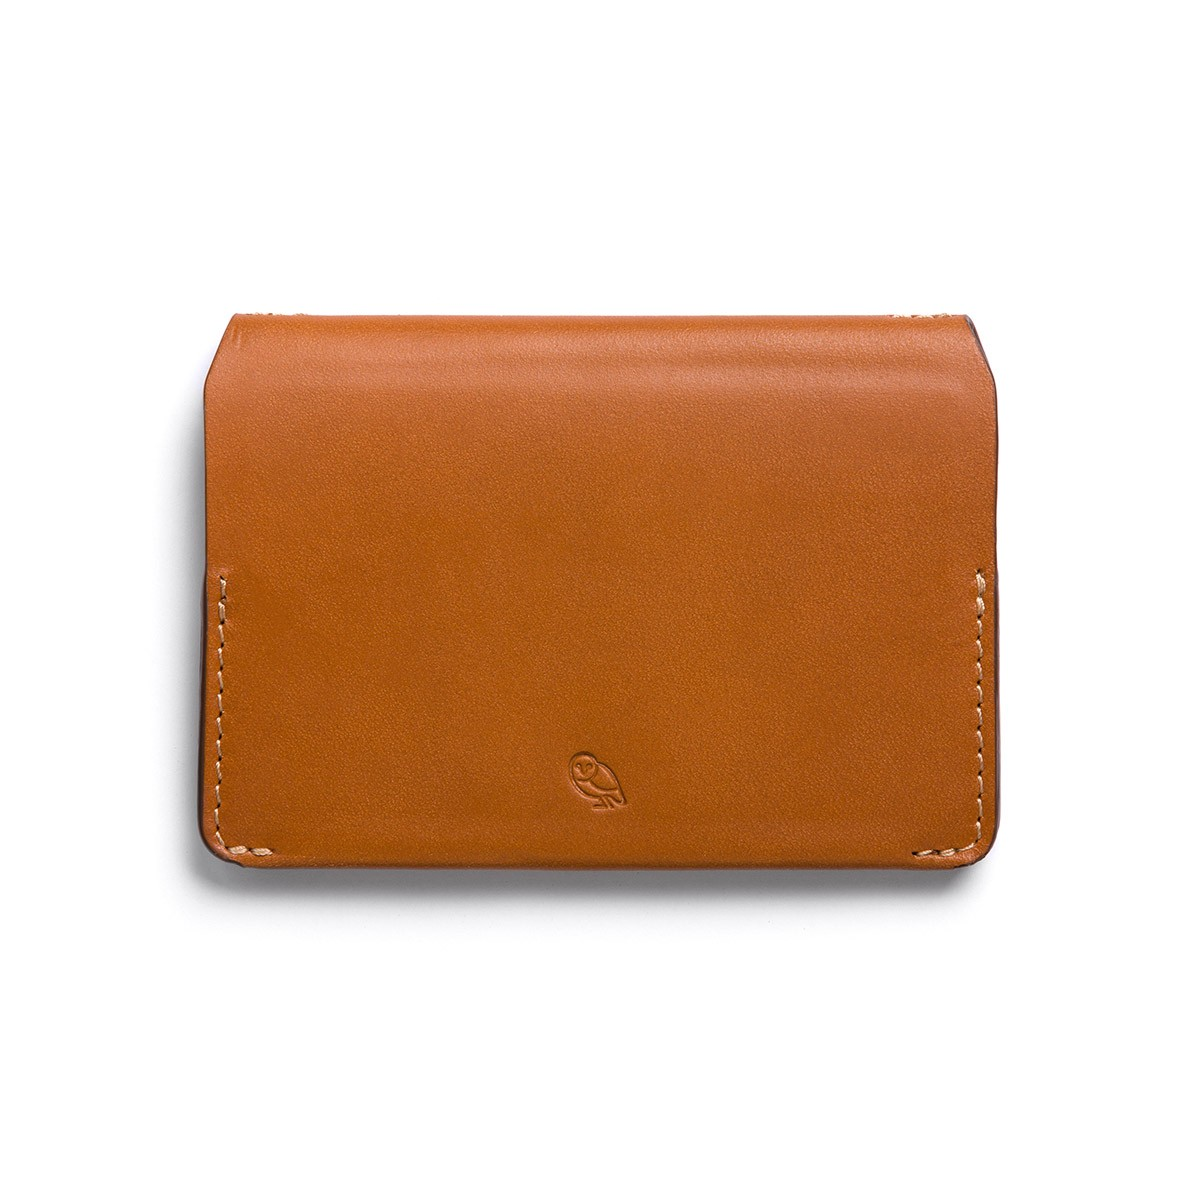 Bellroy card holder mukama card holder this color caramel reheart Image collections